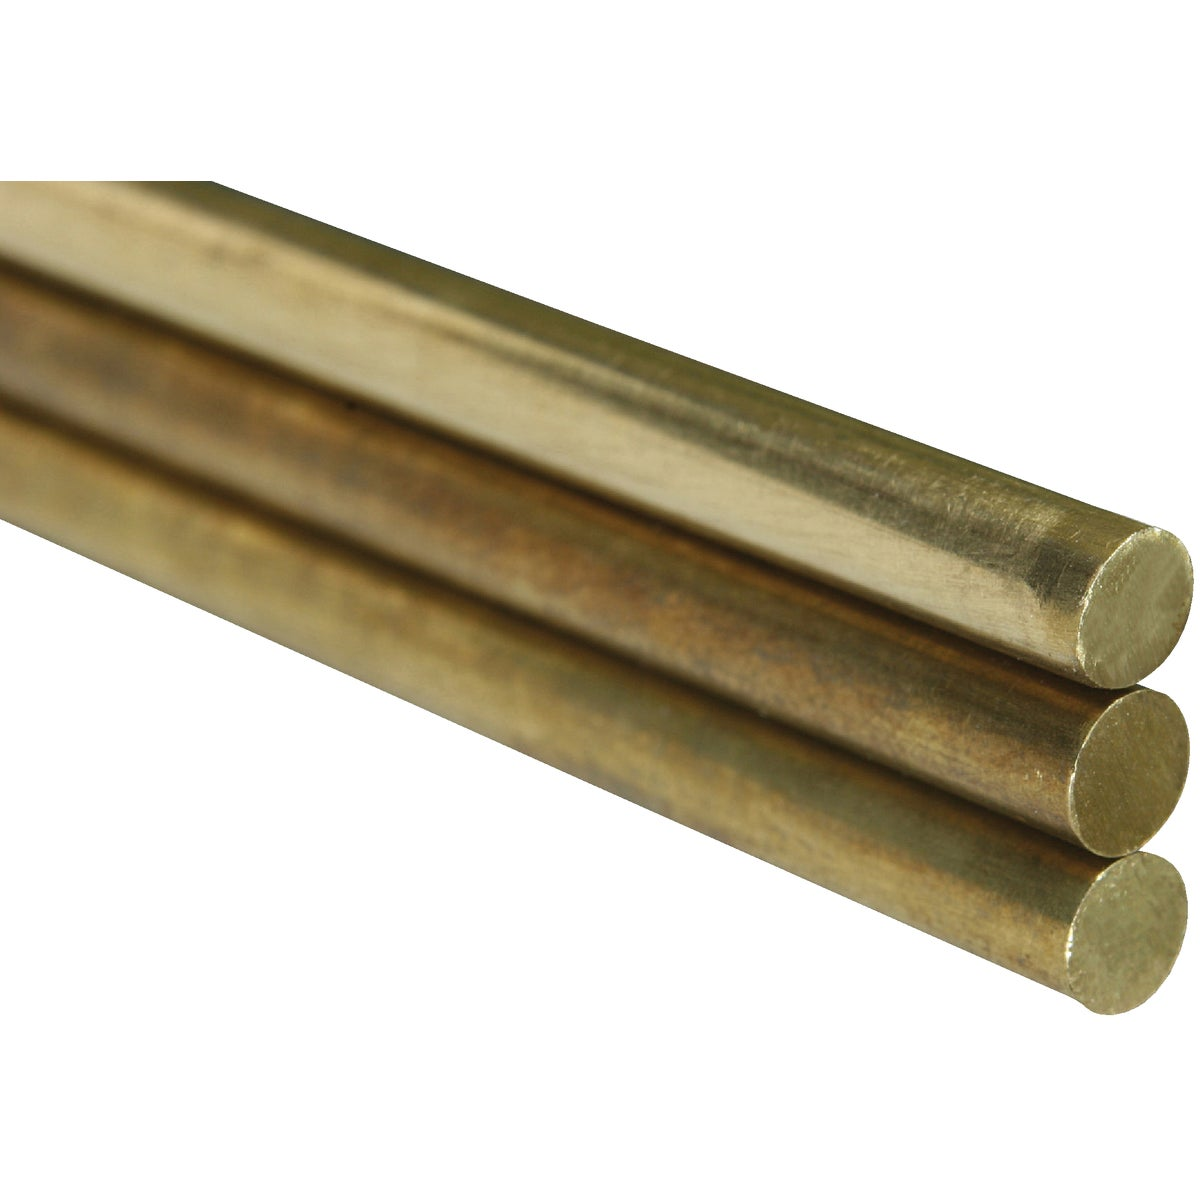 1/8X12 SOLID BRASS ROD - 8164 by K&s Precision Metals